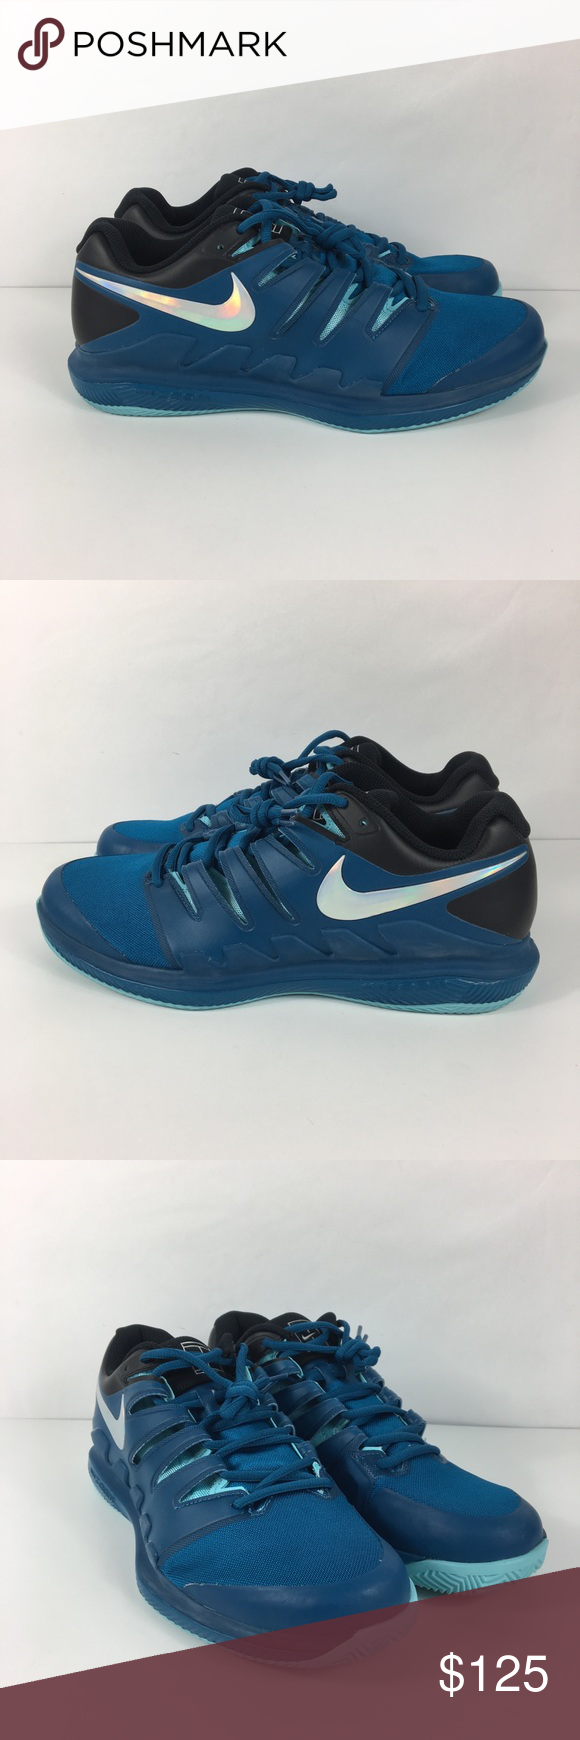 Nike Air Zoom Vapor X Clay Court Tennis Shoes Clay Court Tennis Shoes Nike Air Zoom Tennis Shoes